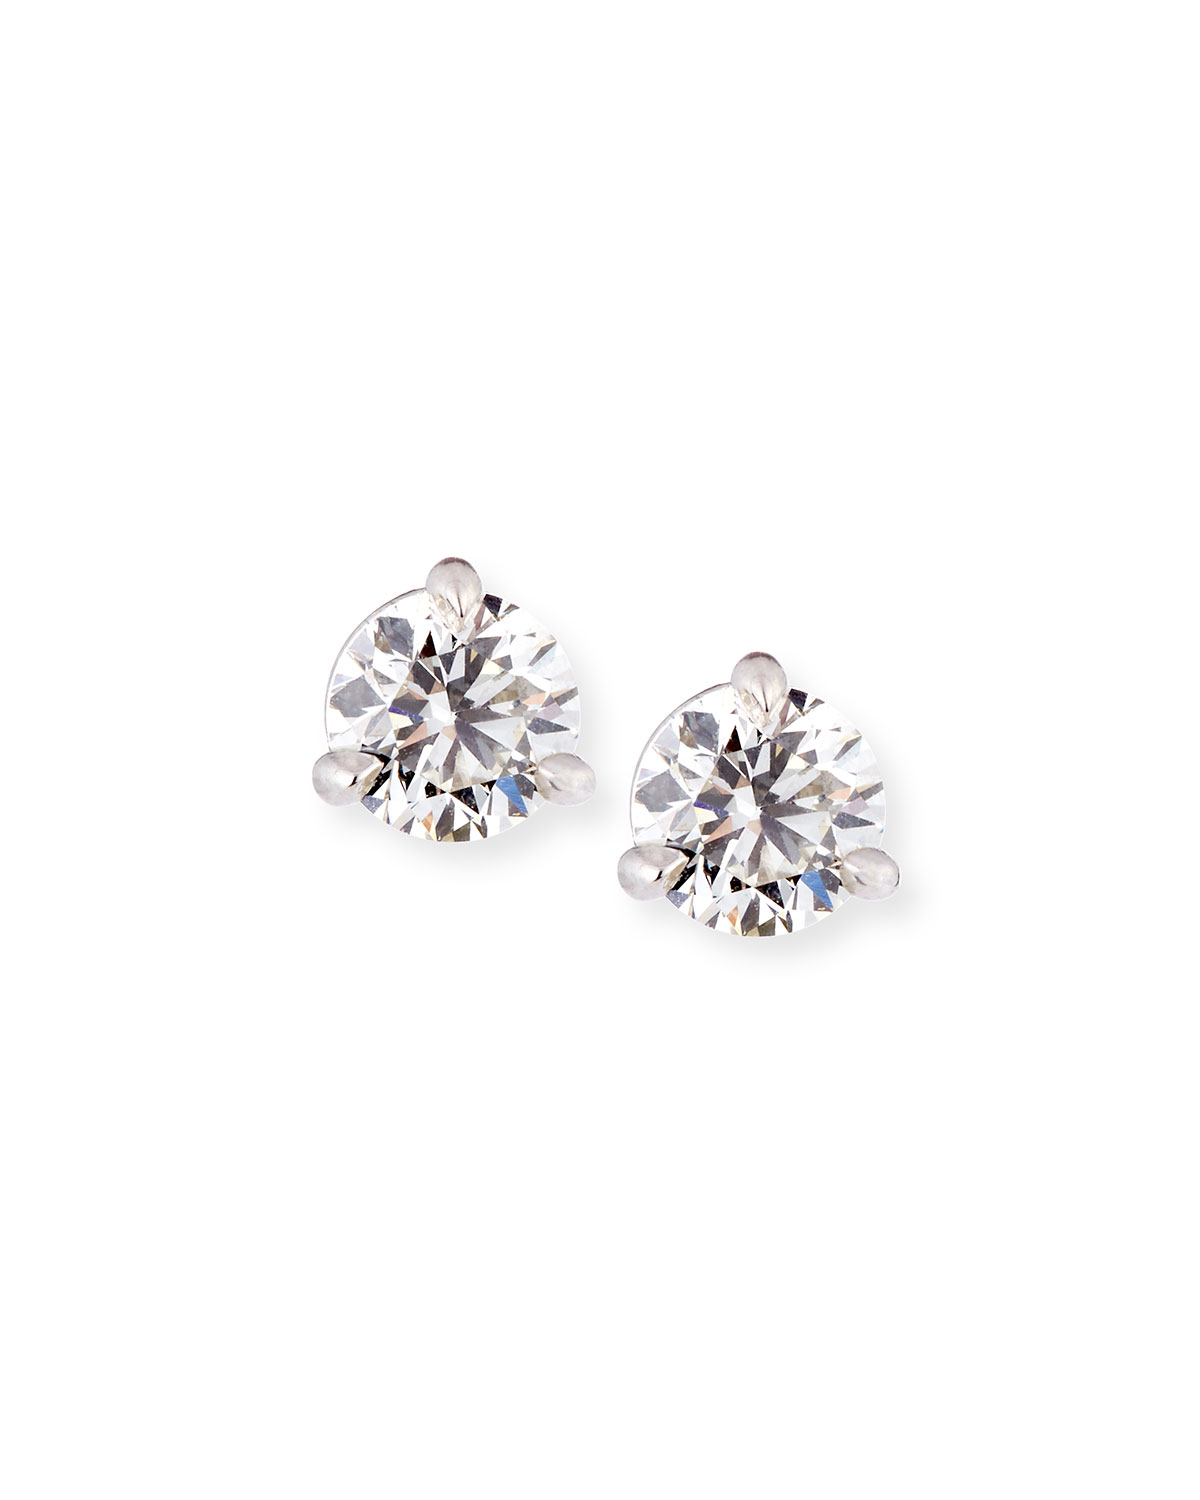 18k White Gold Martini Diamond Stud Earrings 0 77tcw